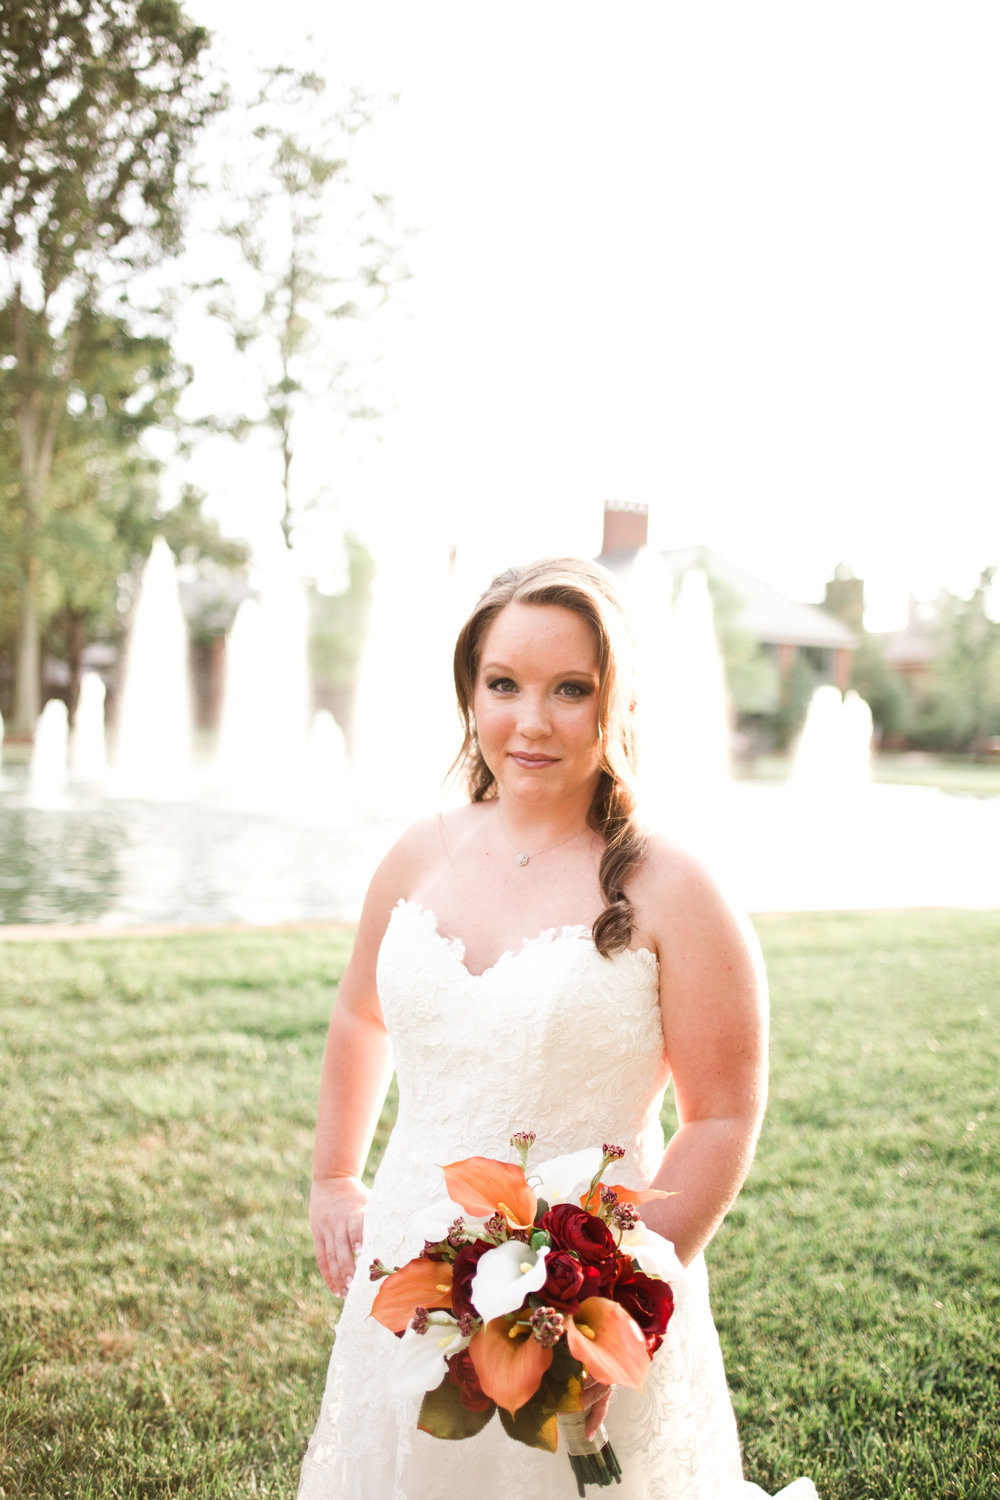 gabbie_bridal_poured_out_photography-59.jpg